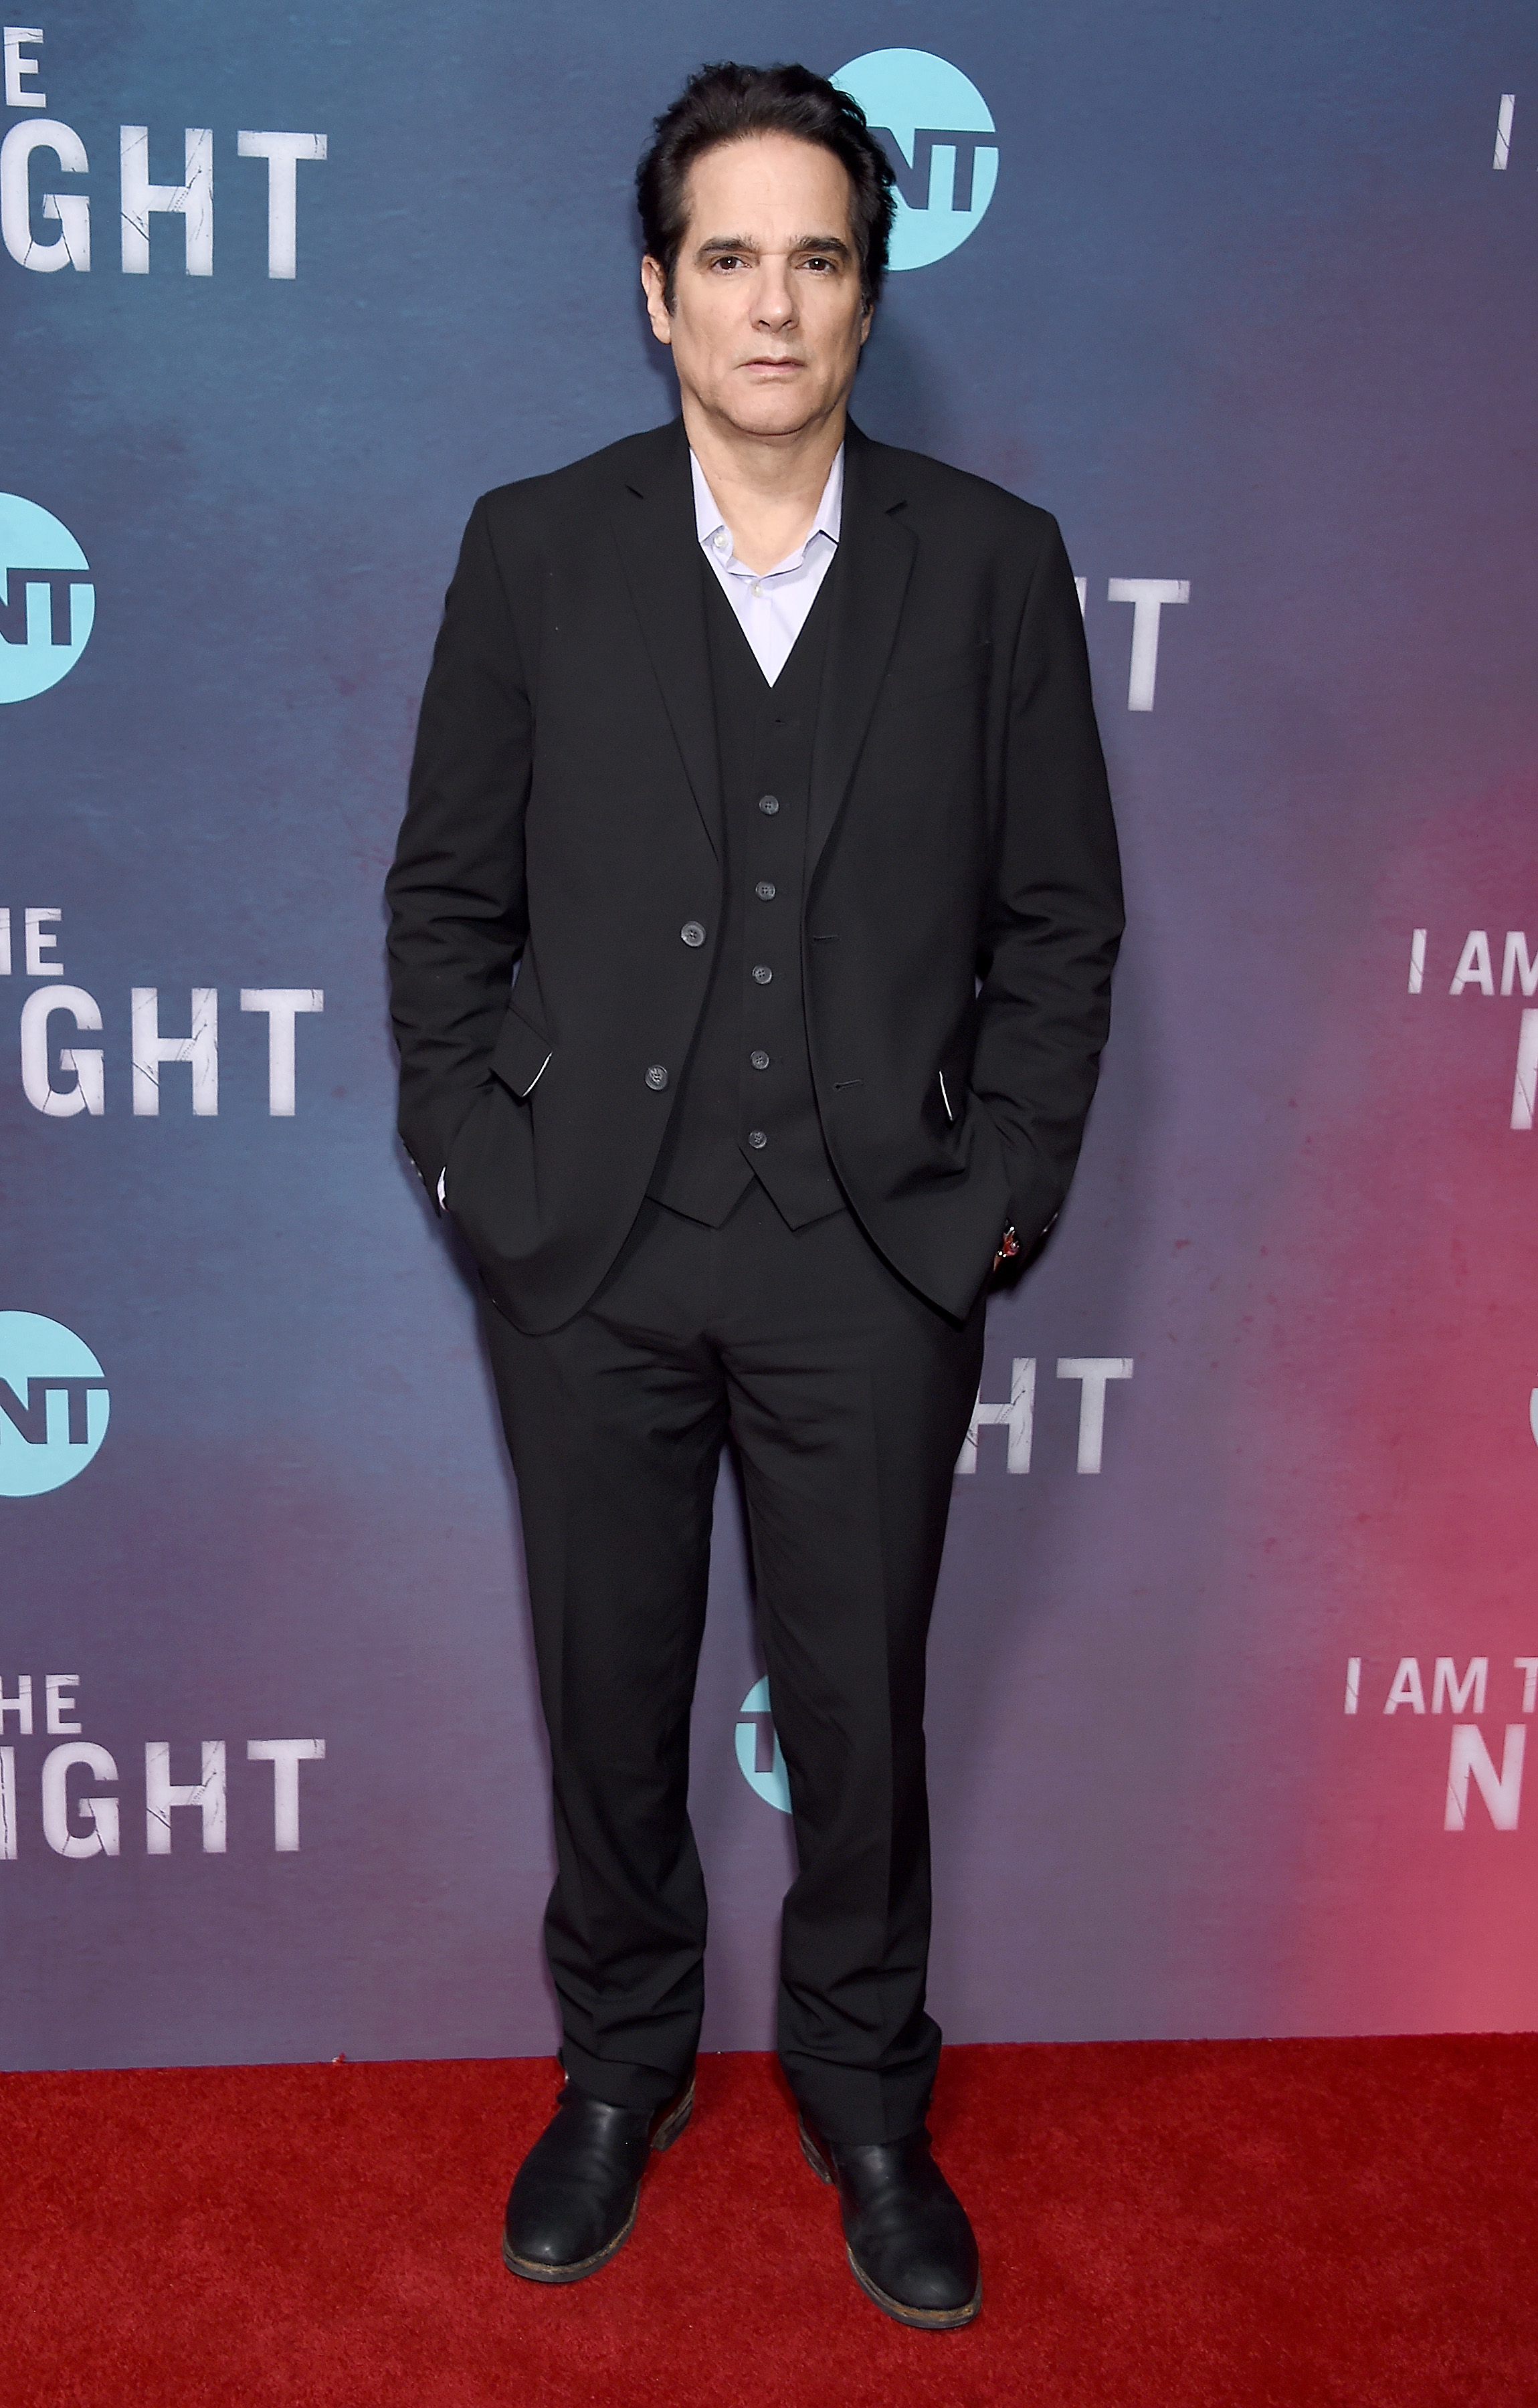 Yul Vazquez attends the Premiere Of TNT's 'I Am The Night' at Harmony Gold on January 24, 2019 in Los Angeles, California. (Photo by Gregg DeGuire/Getty Images)